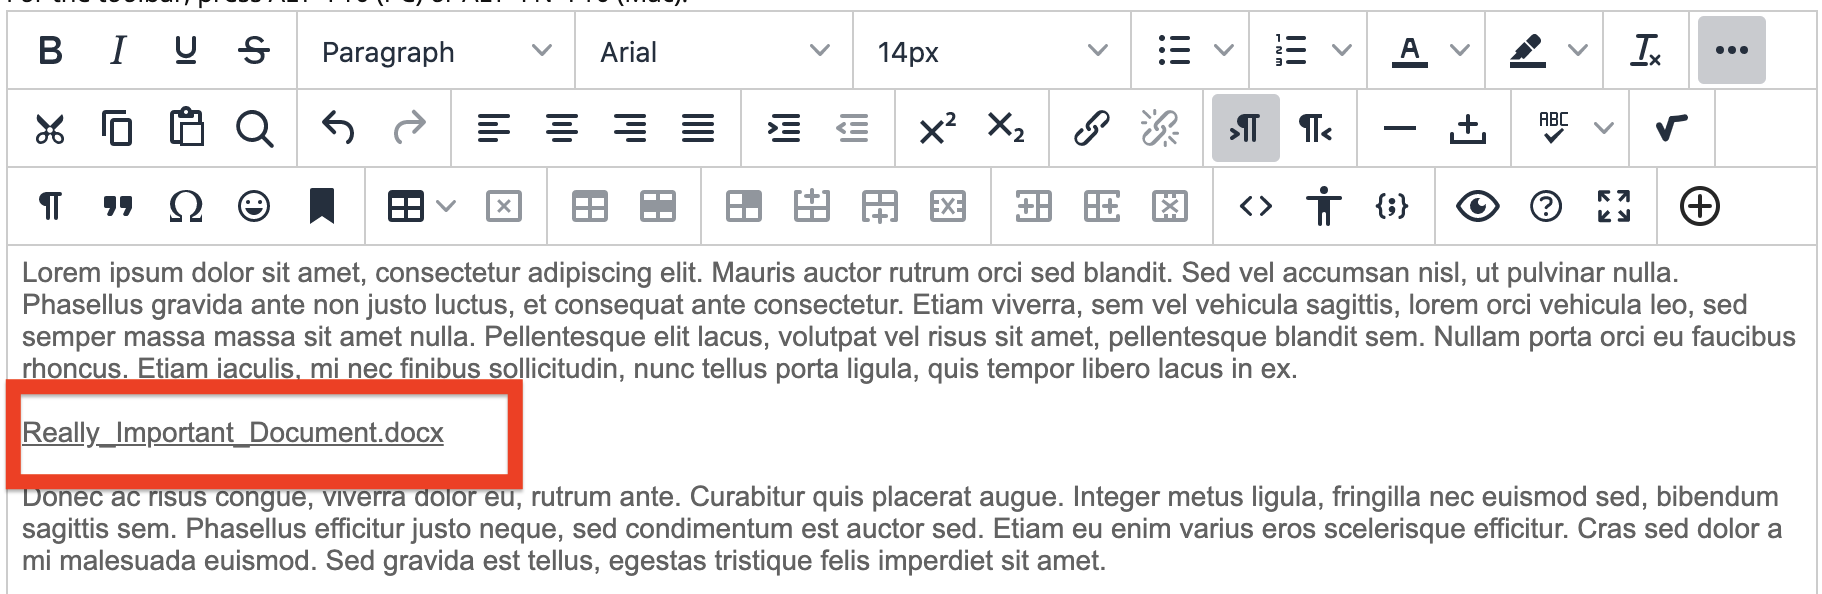 sample image of document inline with text